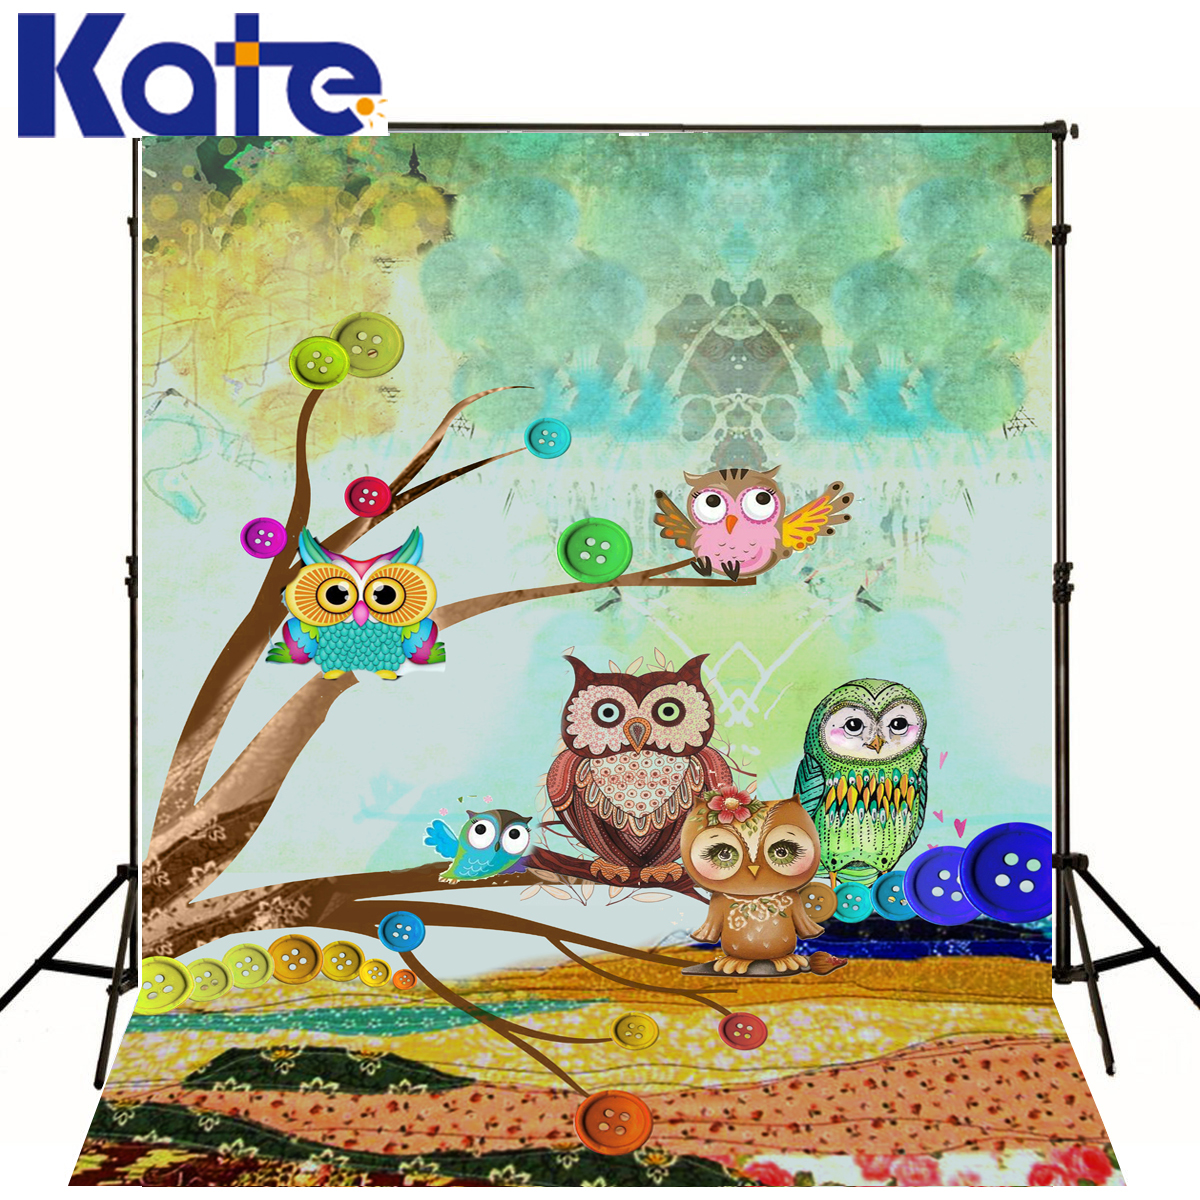 Kate Baby Photography Backdrops Owl Button Tree Photocall Painting Color Backgrounds Fotografia For Photo Studio J01686 kate photography background fundo watches ship parapet pier photo oil painted backdrops photocall foto for fond studio 5x7ft